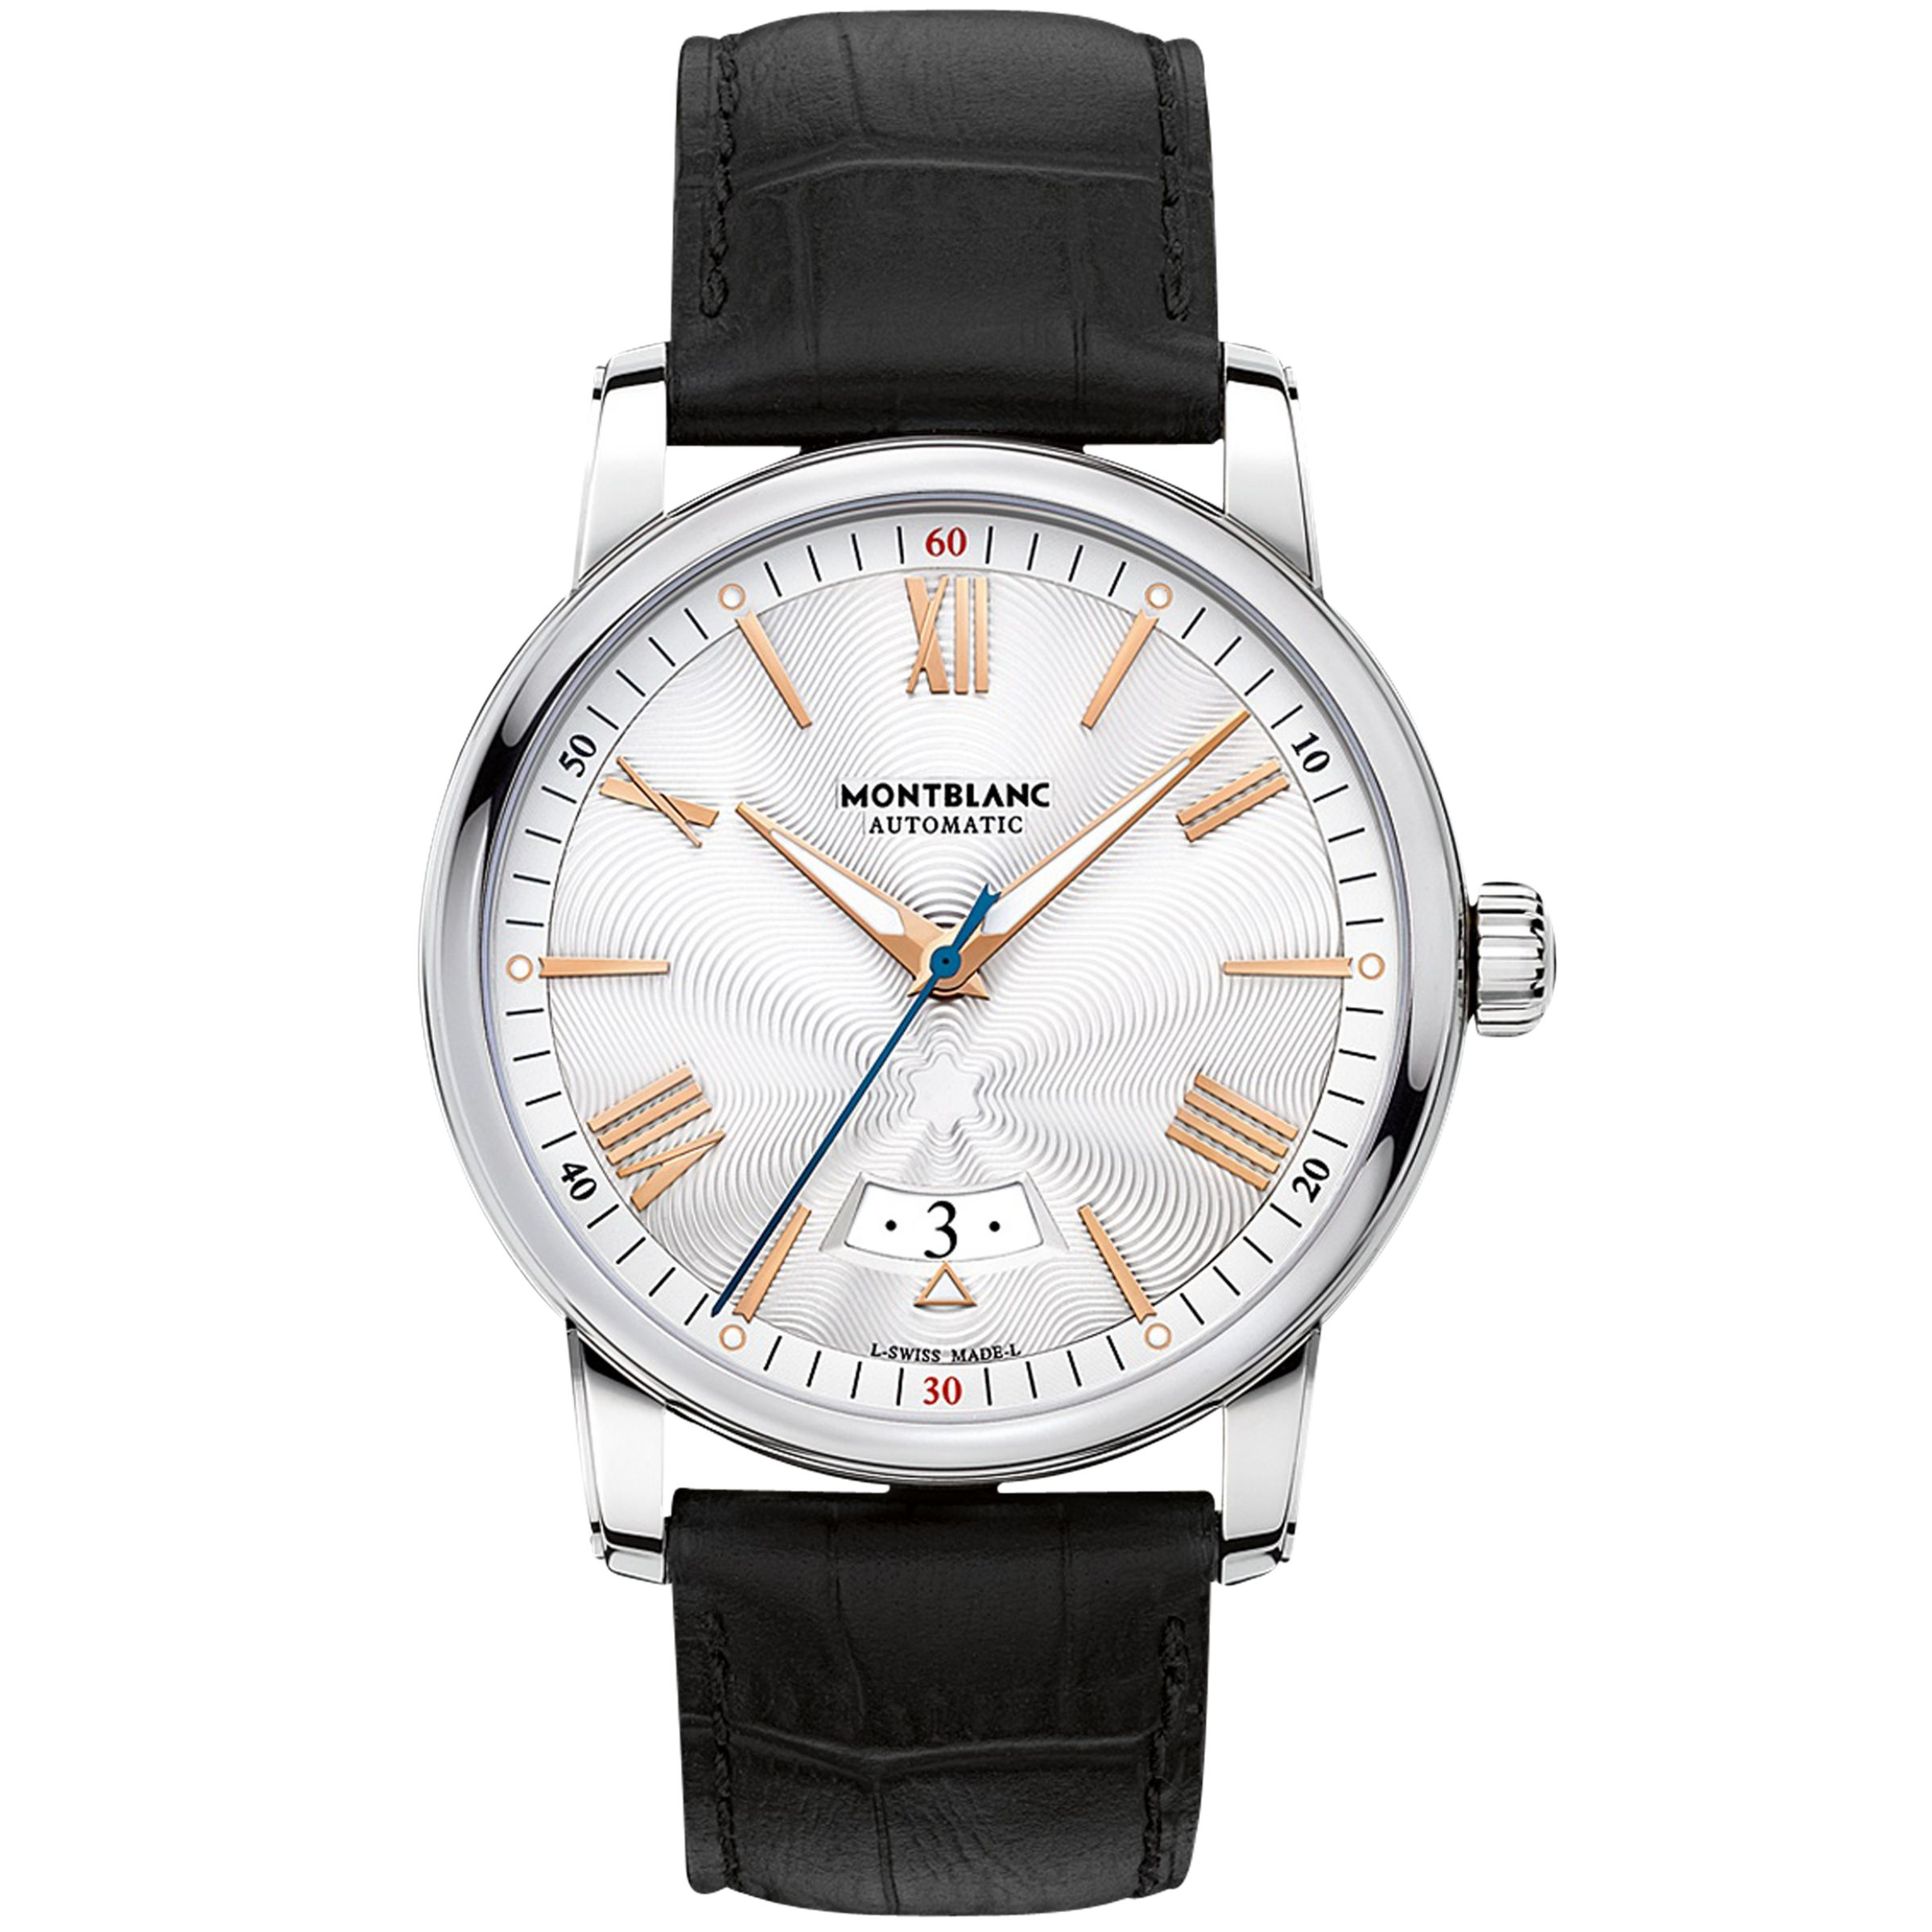 Montblanc Montblanc 114841 Men's 4810 Automatic Date Alligator Leather Strap Watch, Black/Silver